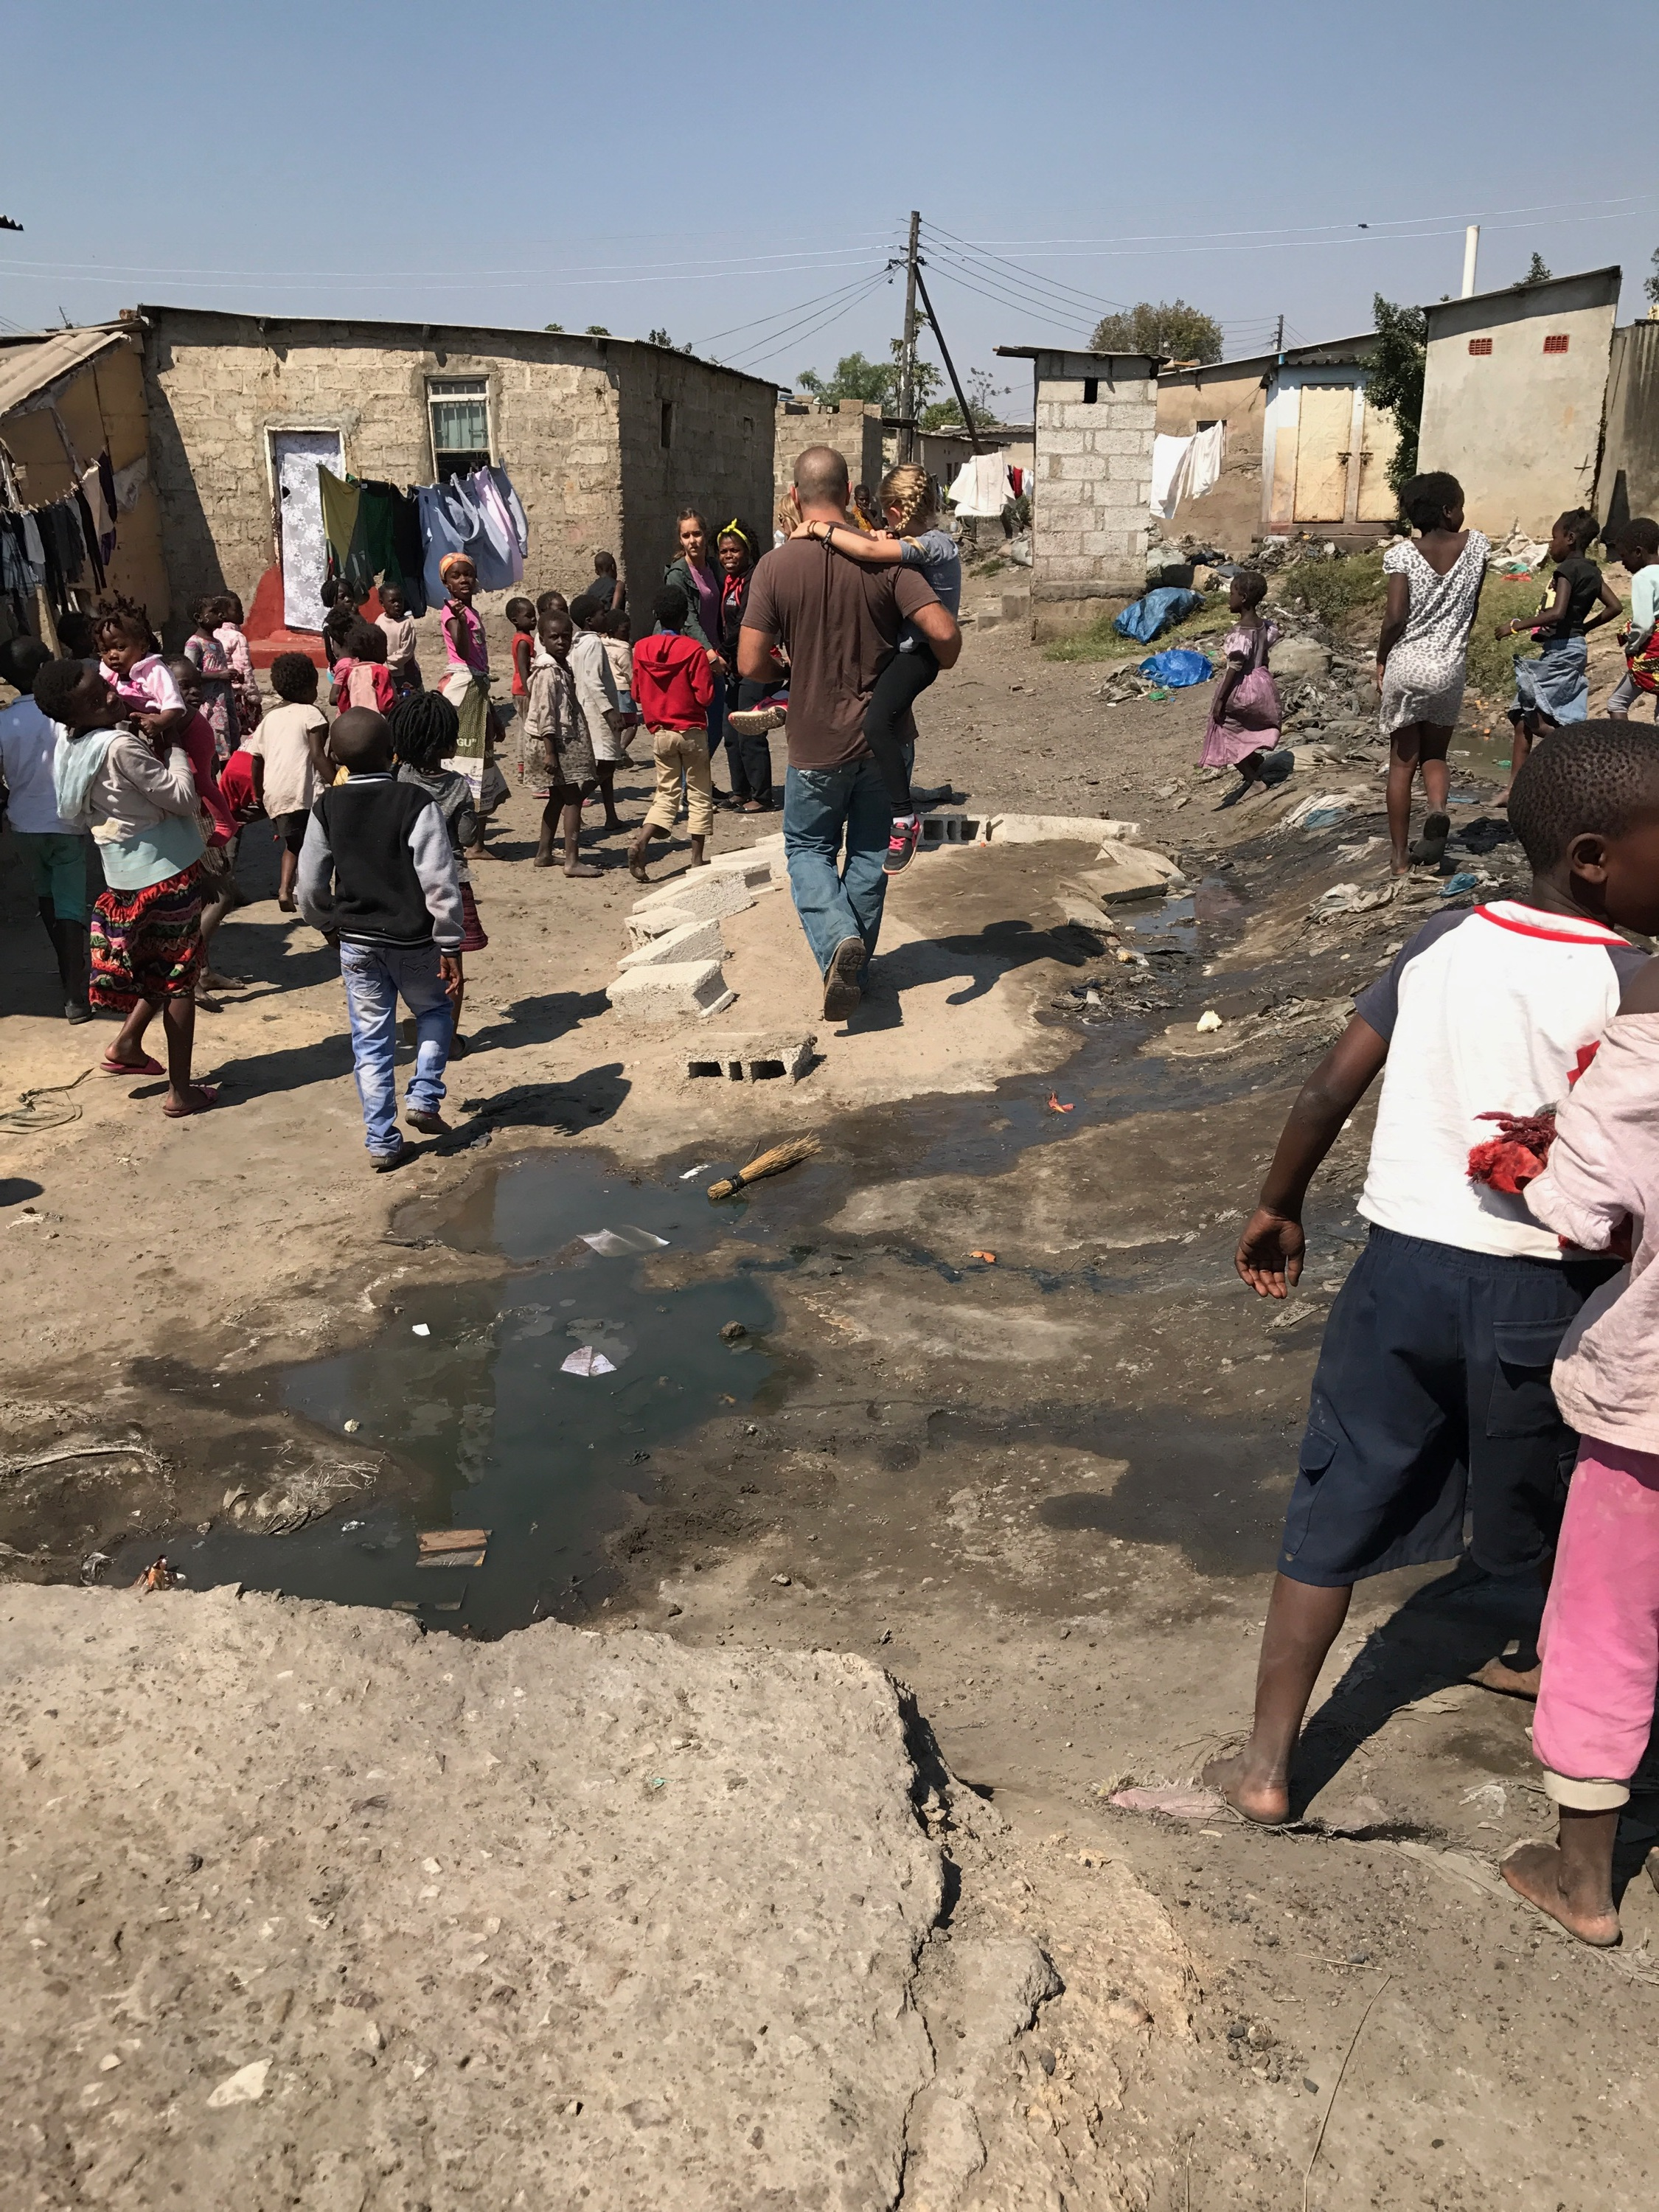 Walking through Chaisa, one of the many compounds in Lusaka that Family Legacy is rescuing children from.